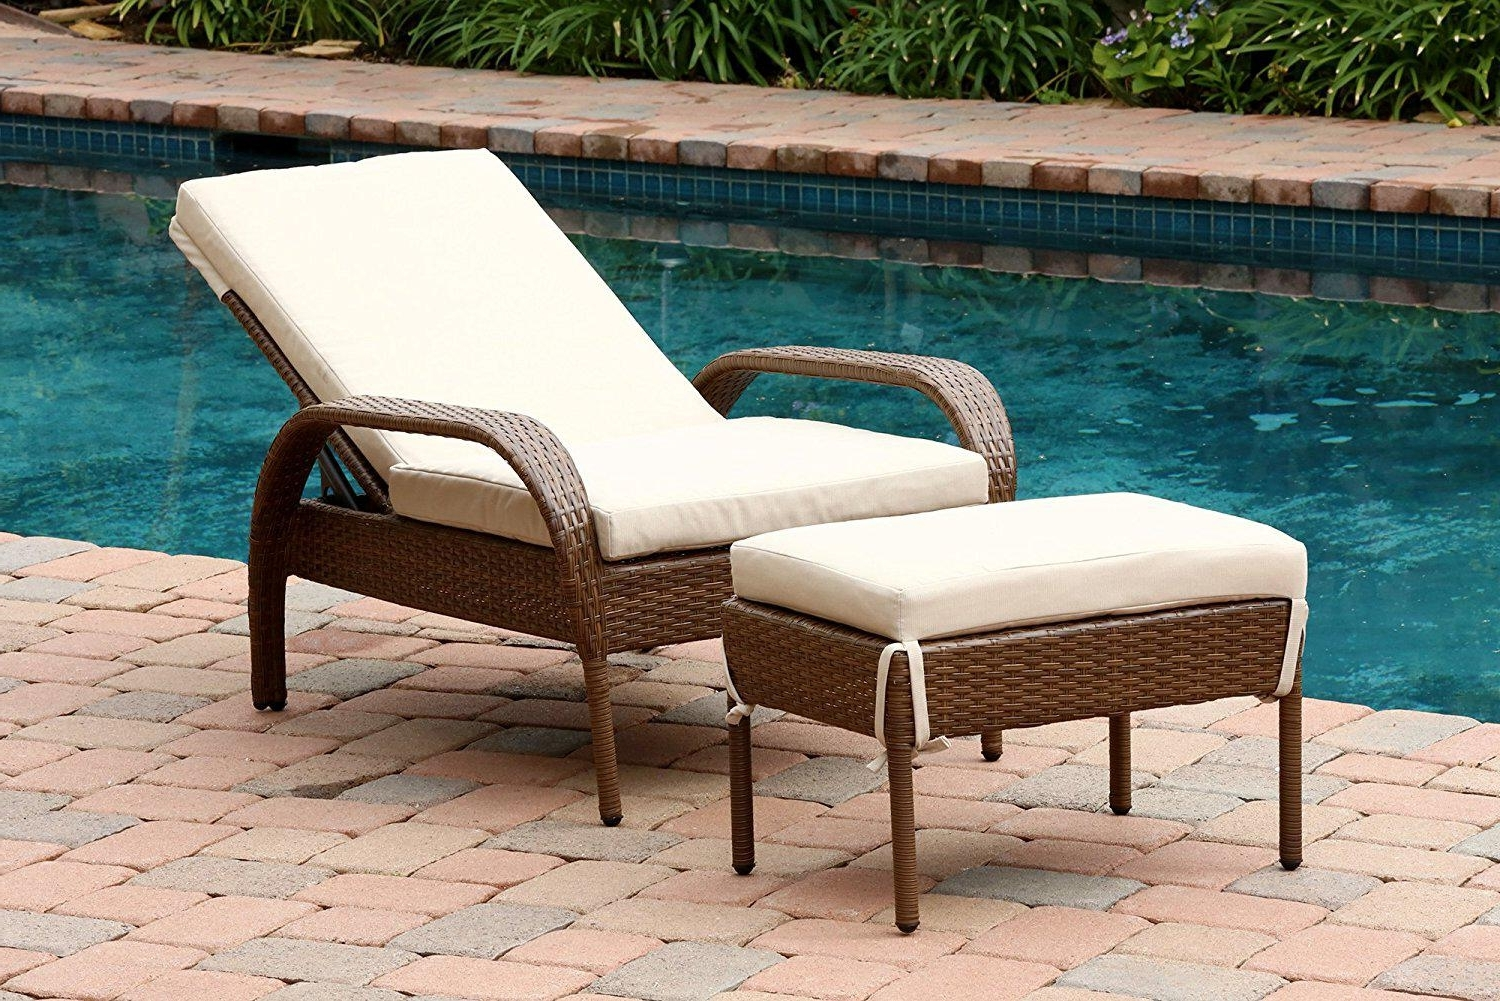 Web Chaise Lounge Lawn Chairs Pertaining To Famous Outdoor : Patio Furniture Lounge Lounge Chairs For Bedroom Plastic (View 9 of 15)